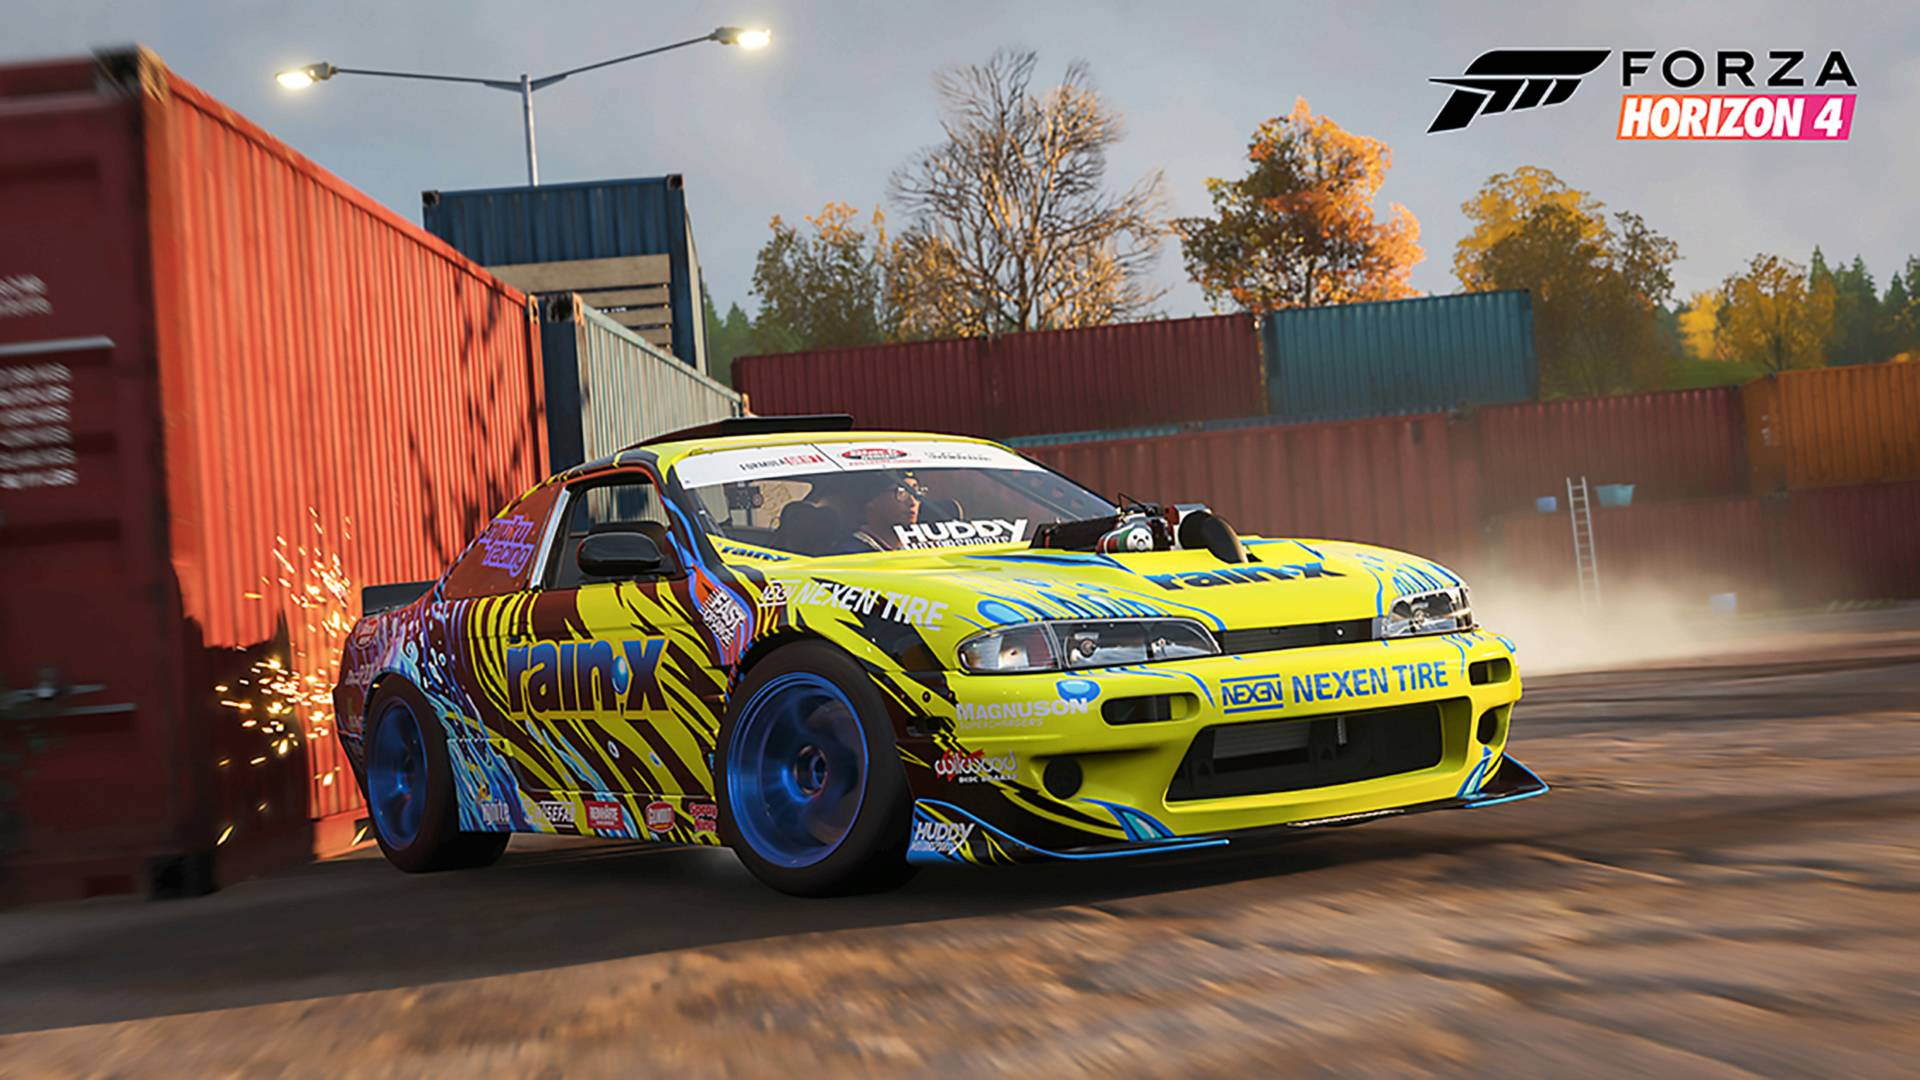 Get Your Drift On With New Car Pack For Forza 7 And Horizon 4